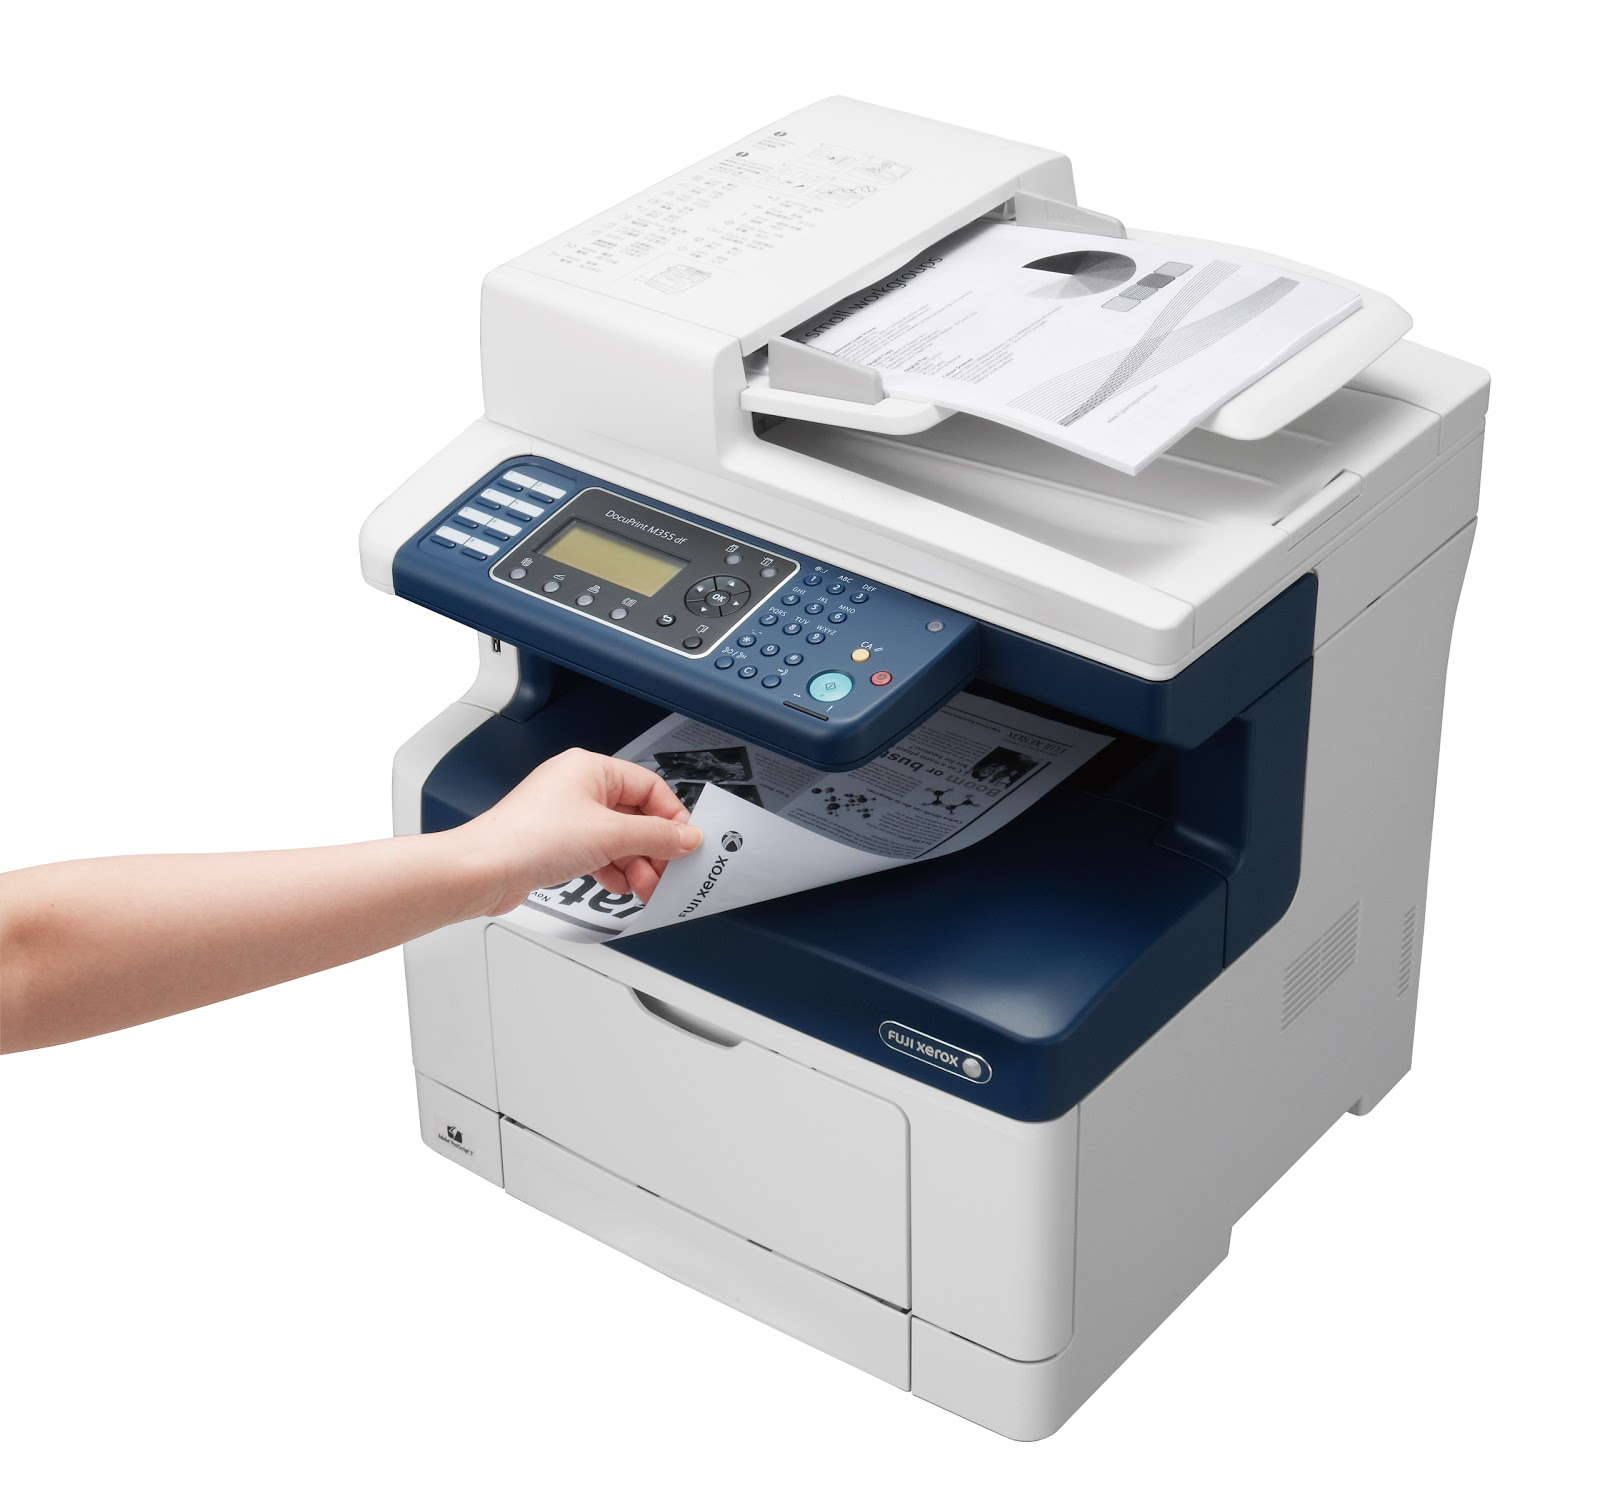 Free Download Printer Driver Fuji Xerox DocuPrint M355df - All